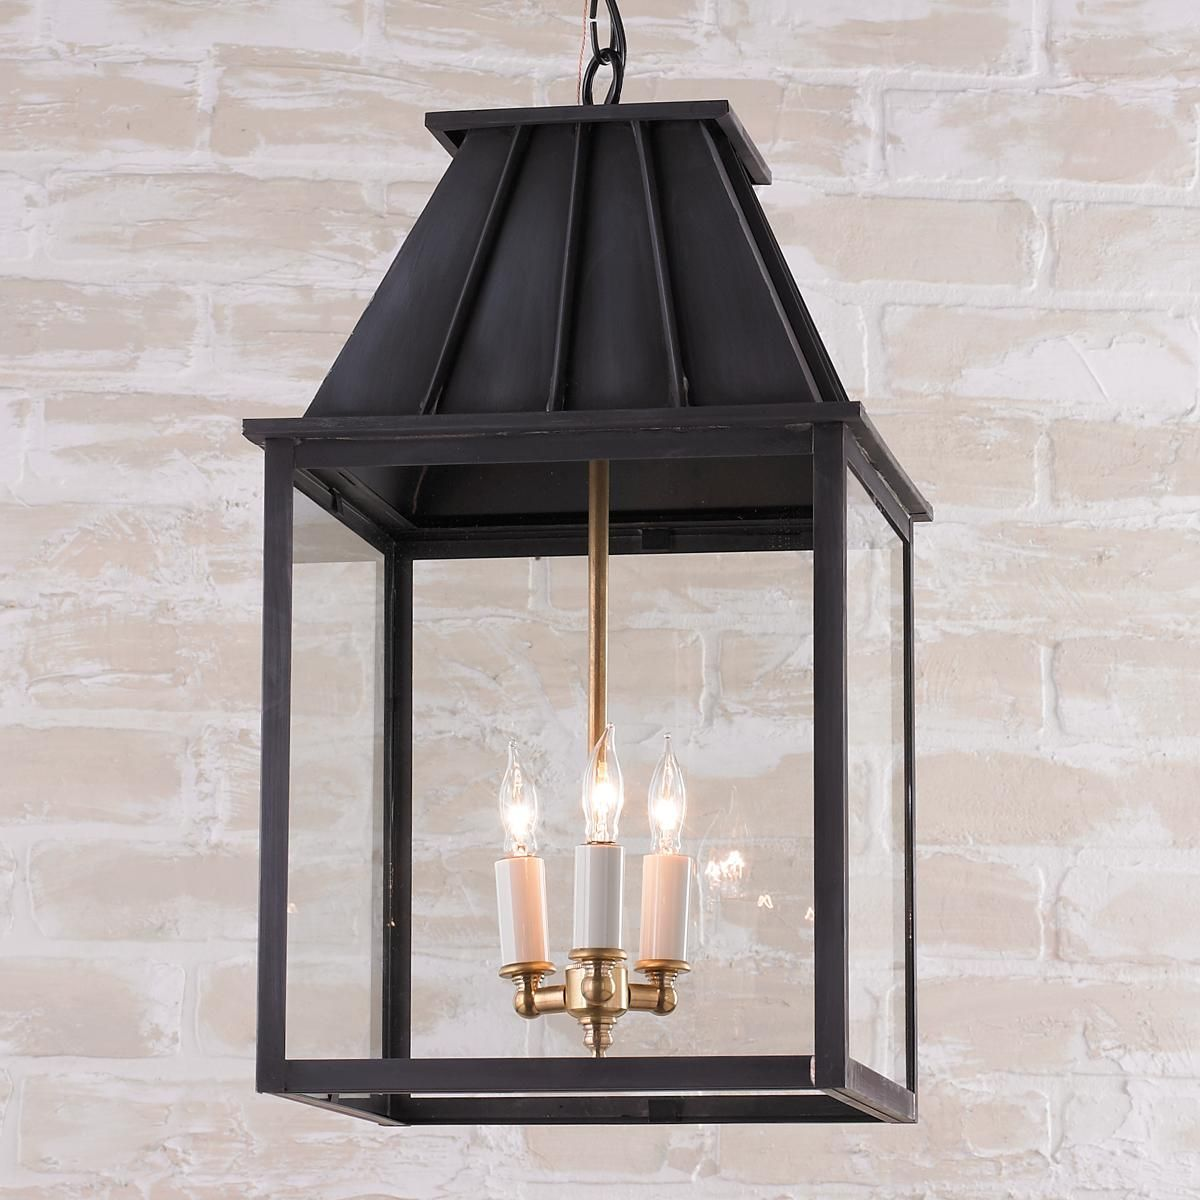 Mansard style outdoor hanging lantern outdoor hanging lanterns mansard style outdoor hanging lantern arubaitofo Image collections